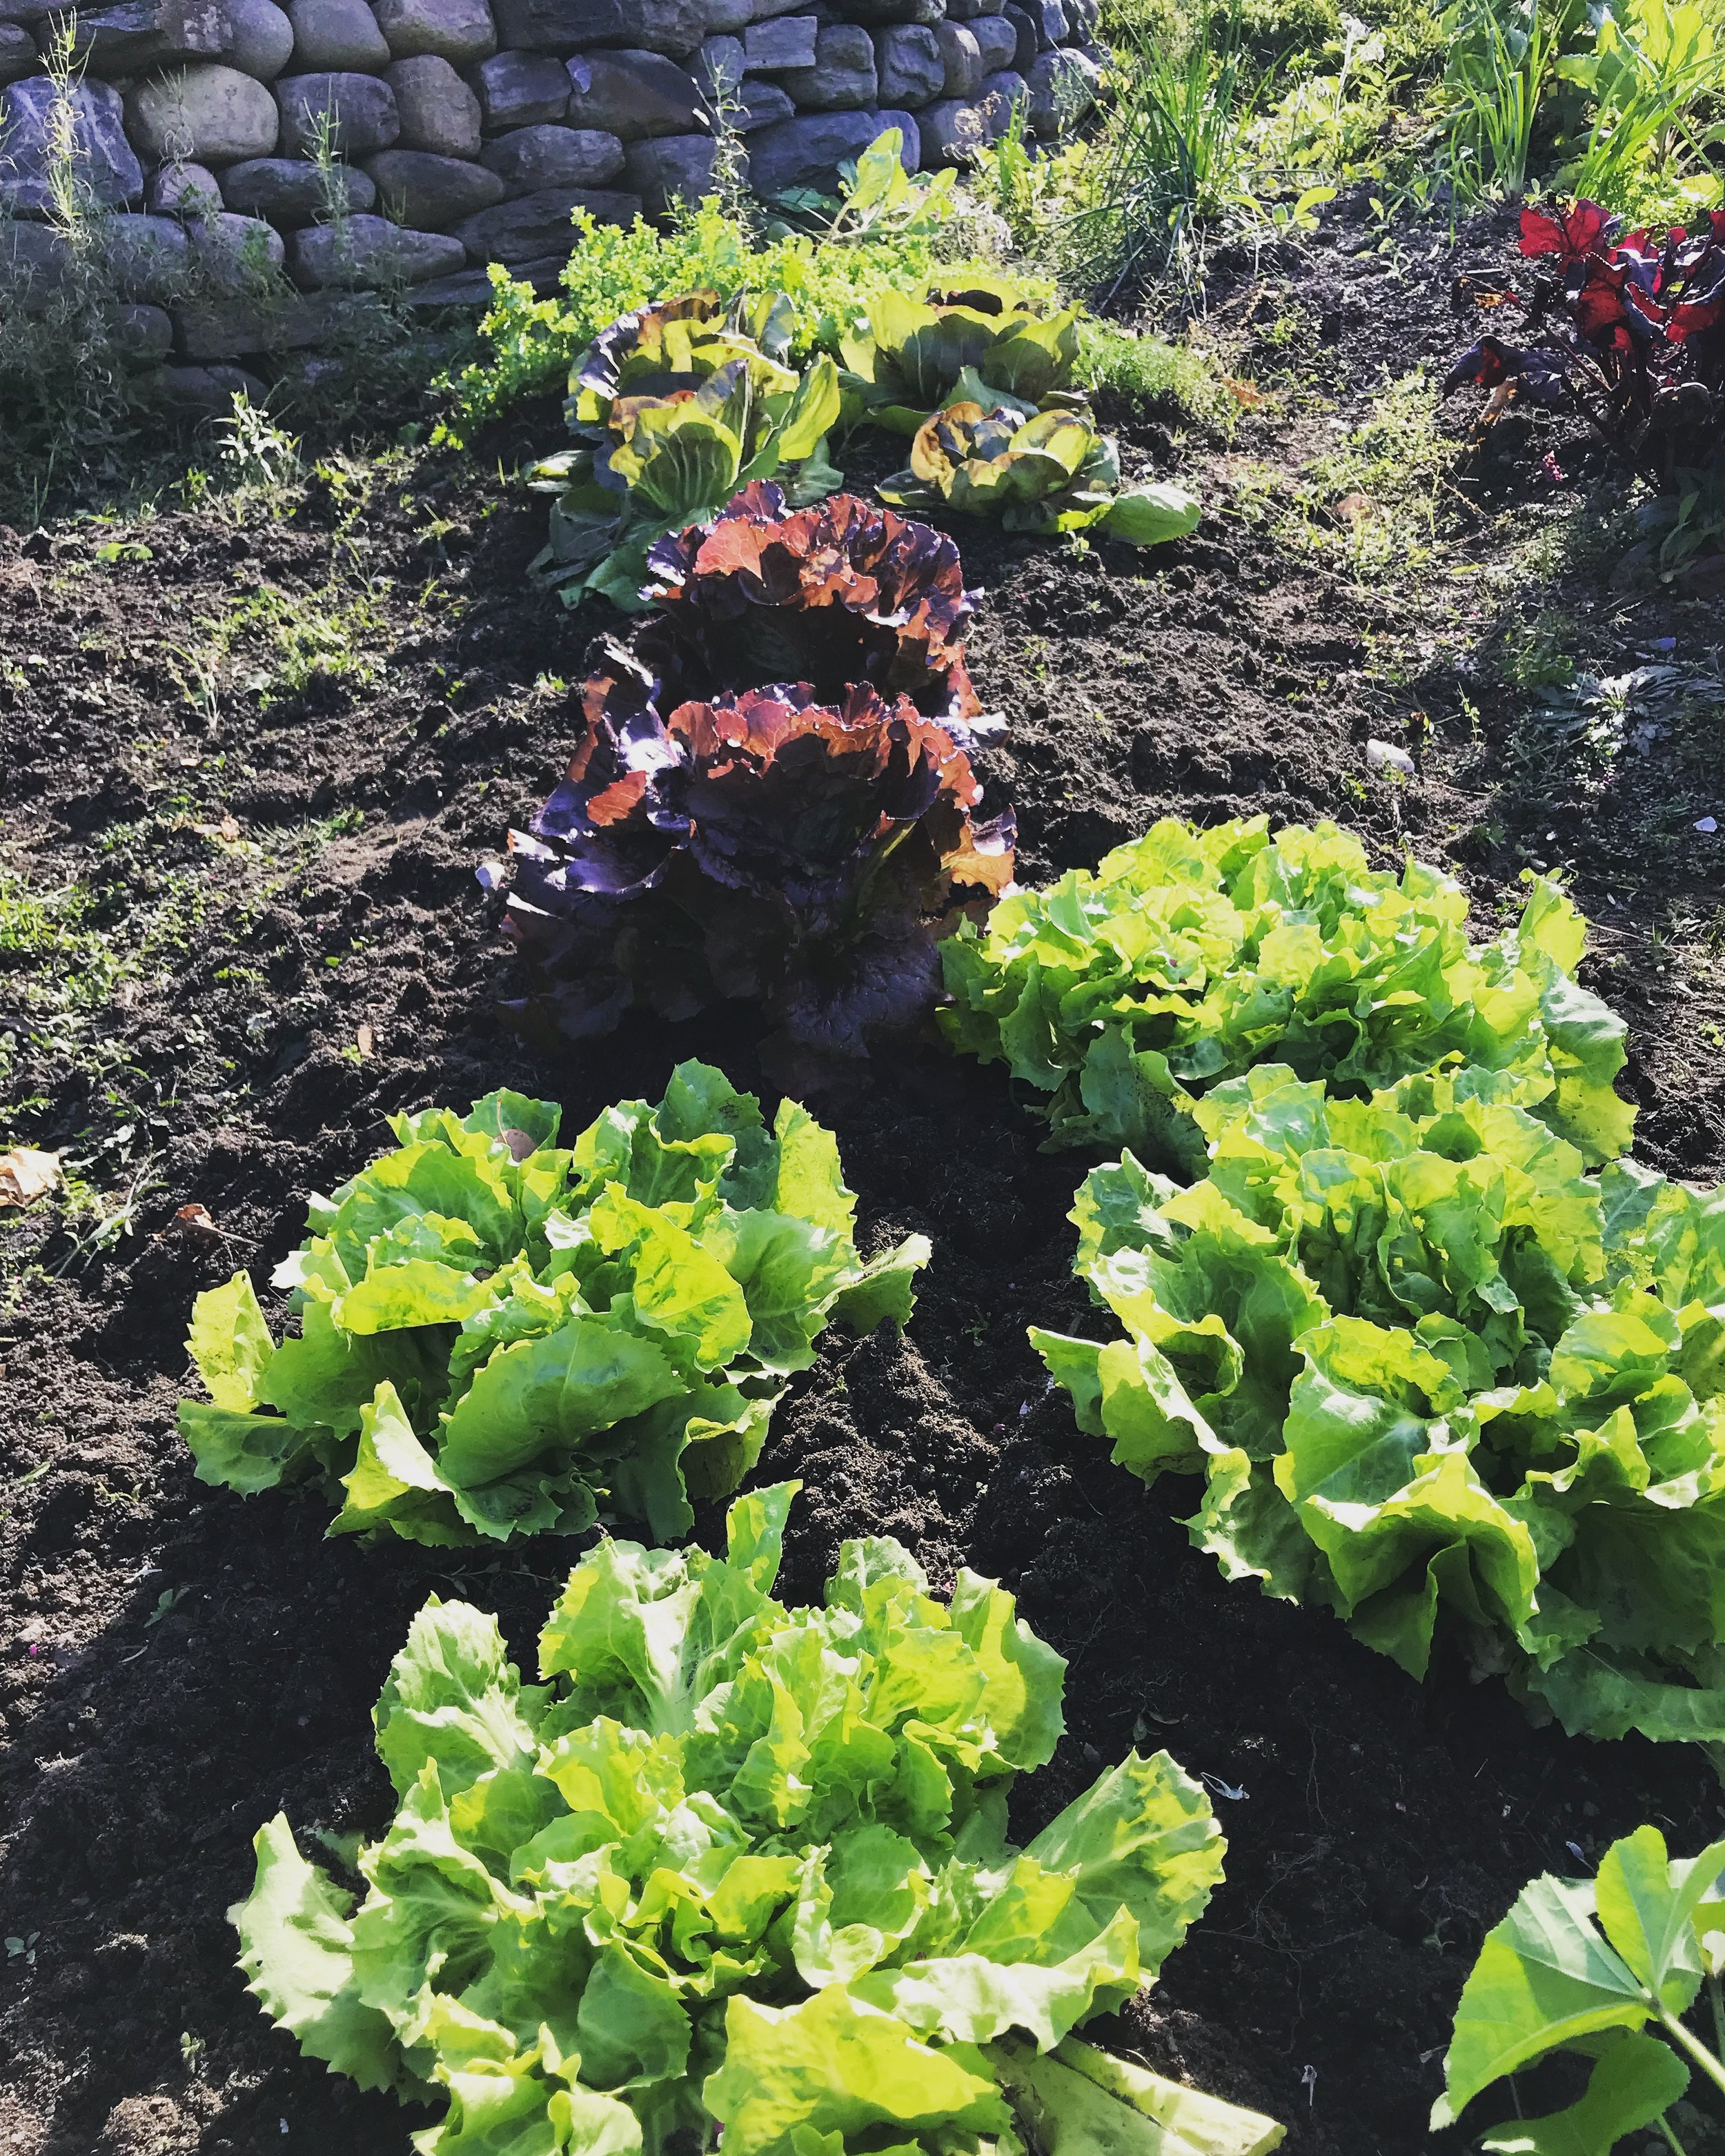 Lettuce, Raddichio and Escarole in November.